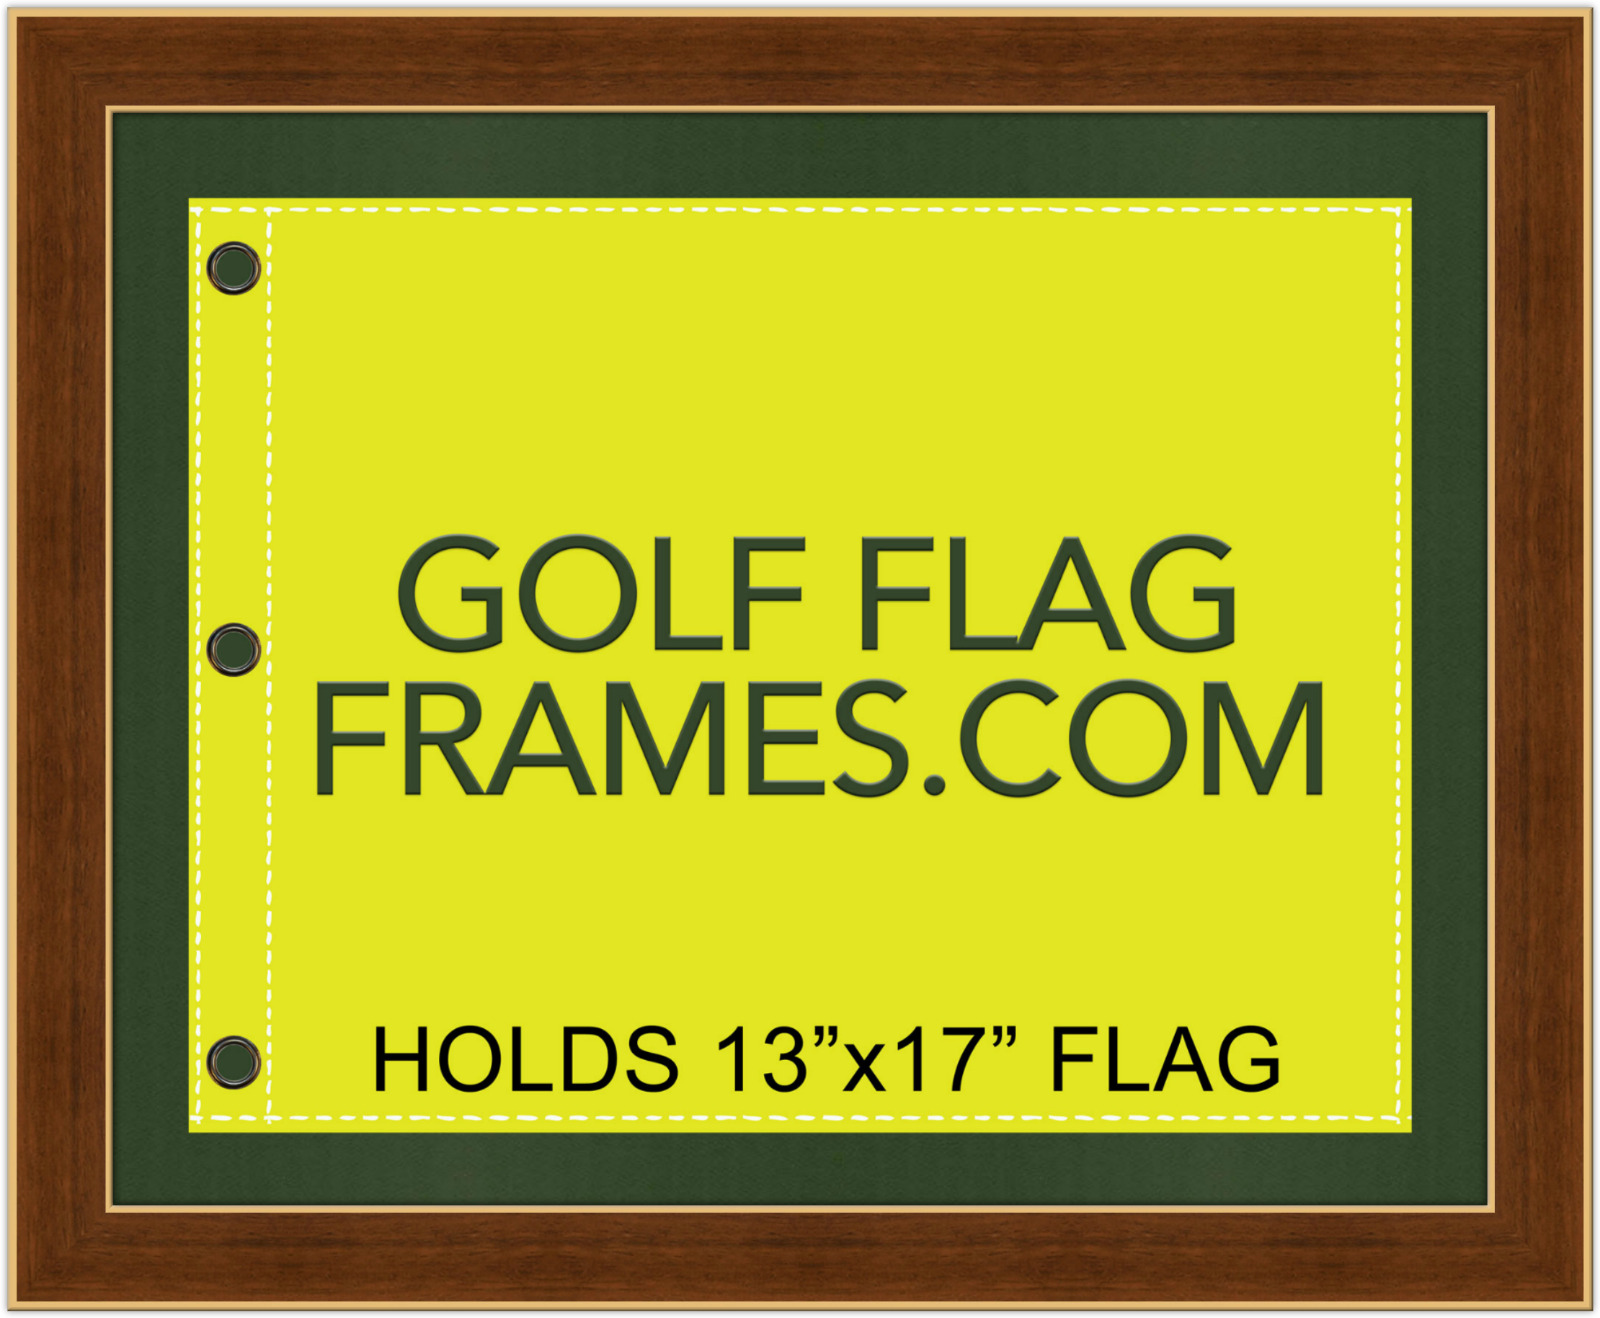 16x20 Brown Golf Flag Frame Brn-010 Holds 13x17 Masters Flag Flag ...